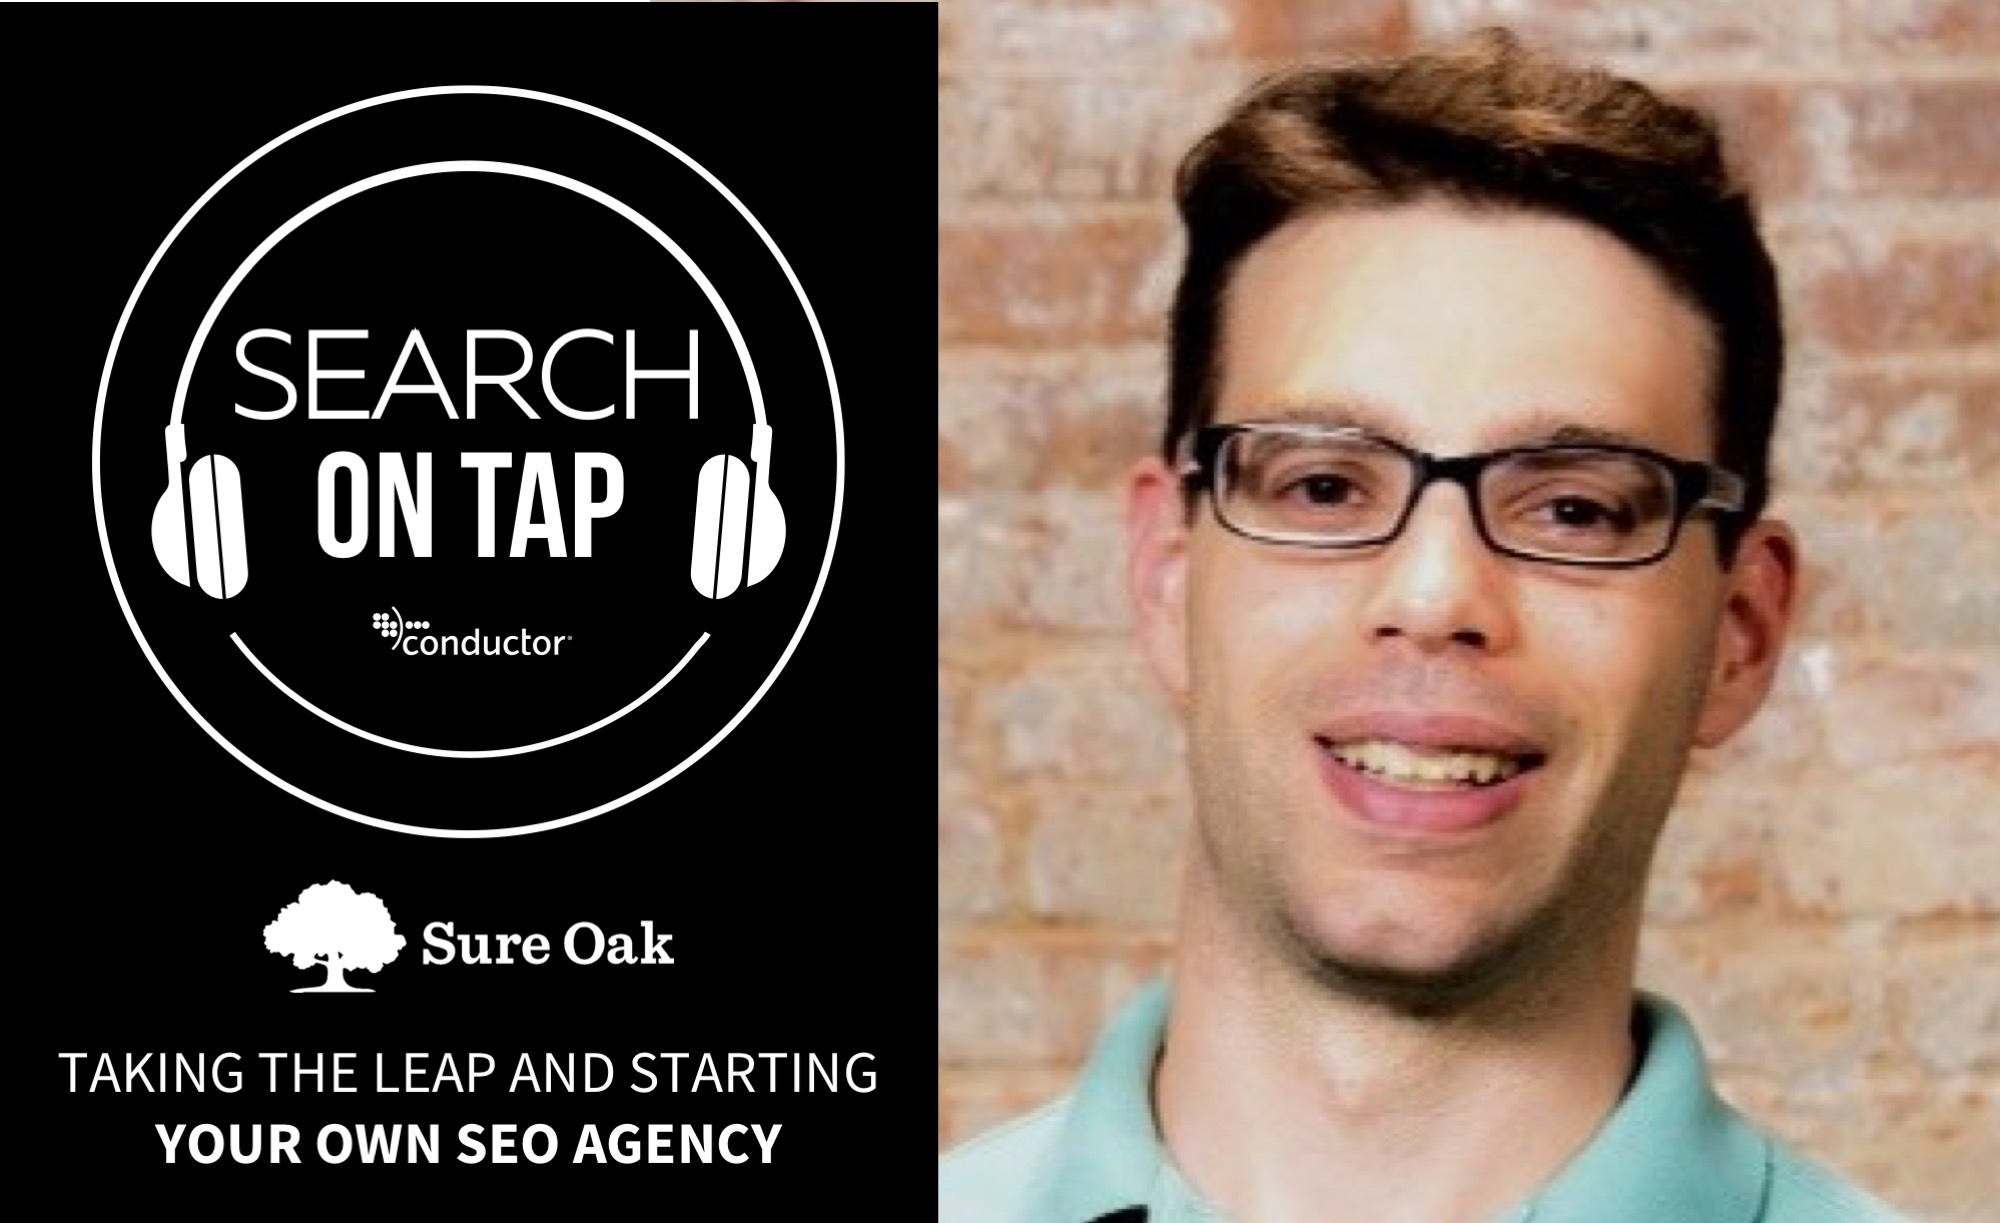 Tom Casano joins Search On Tap